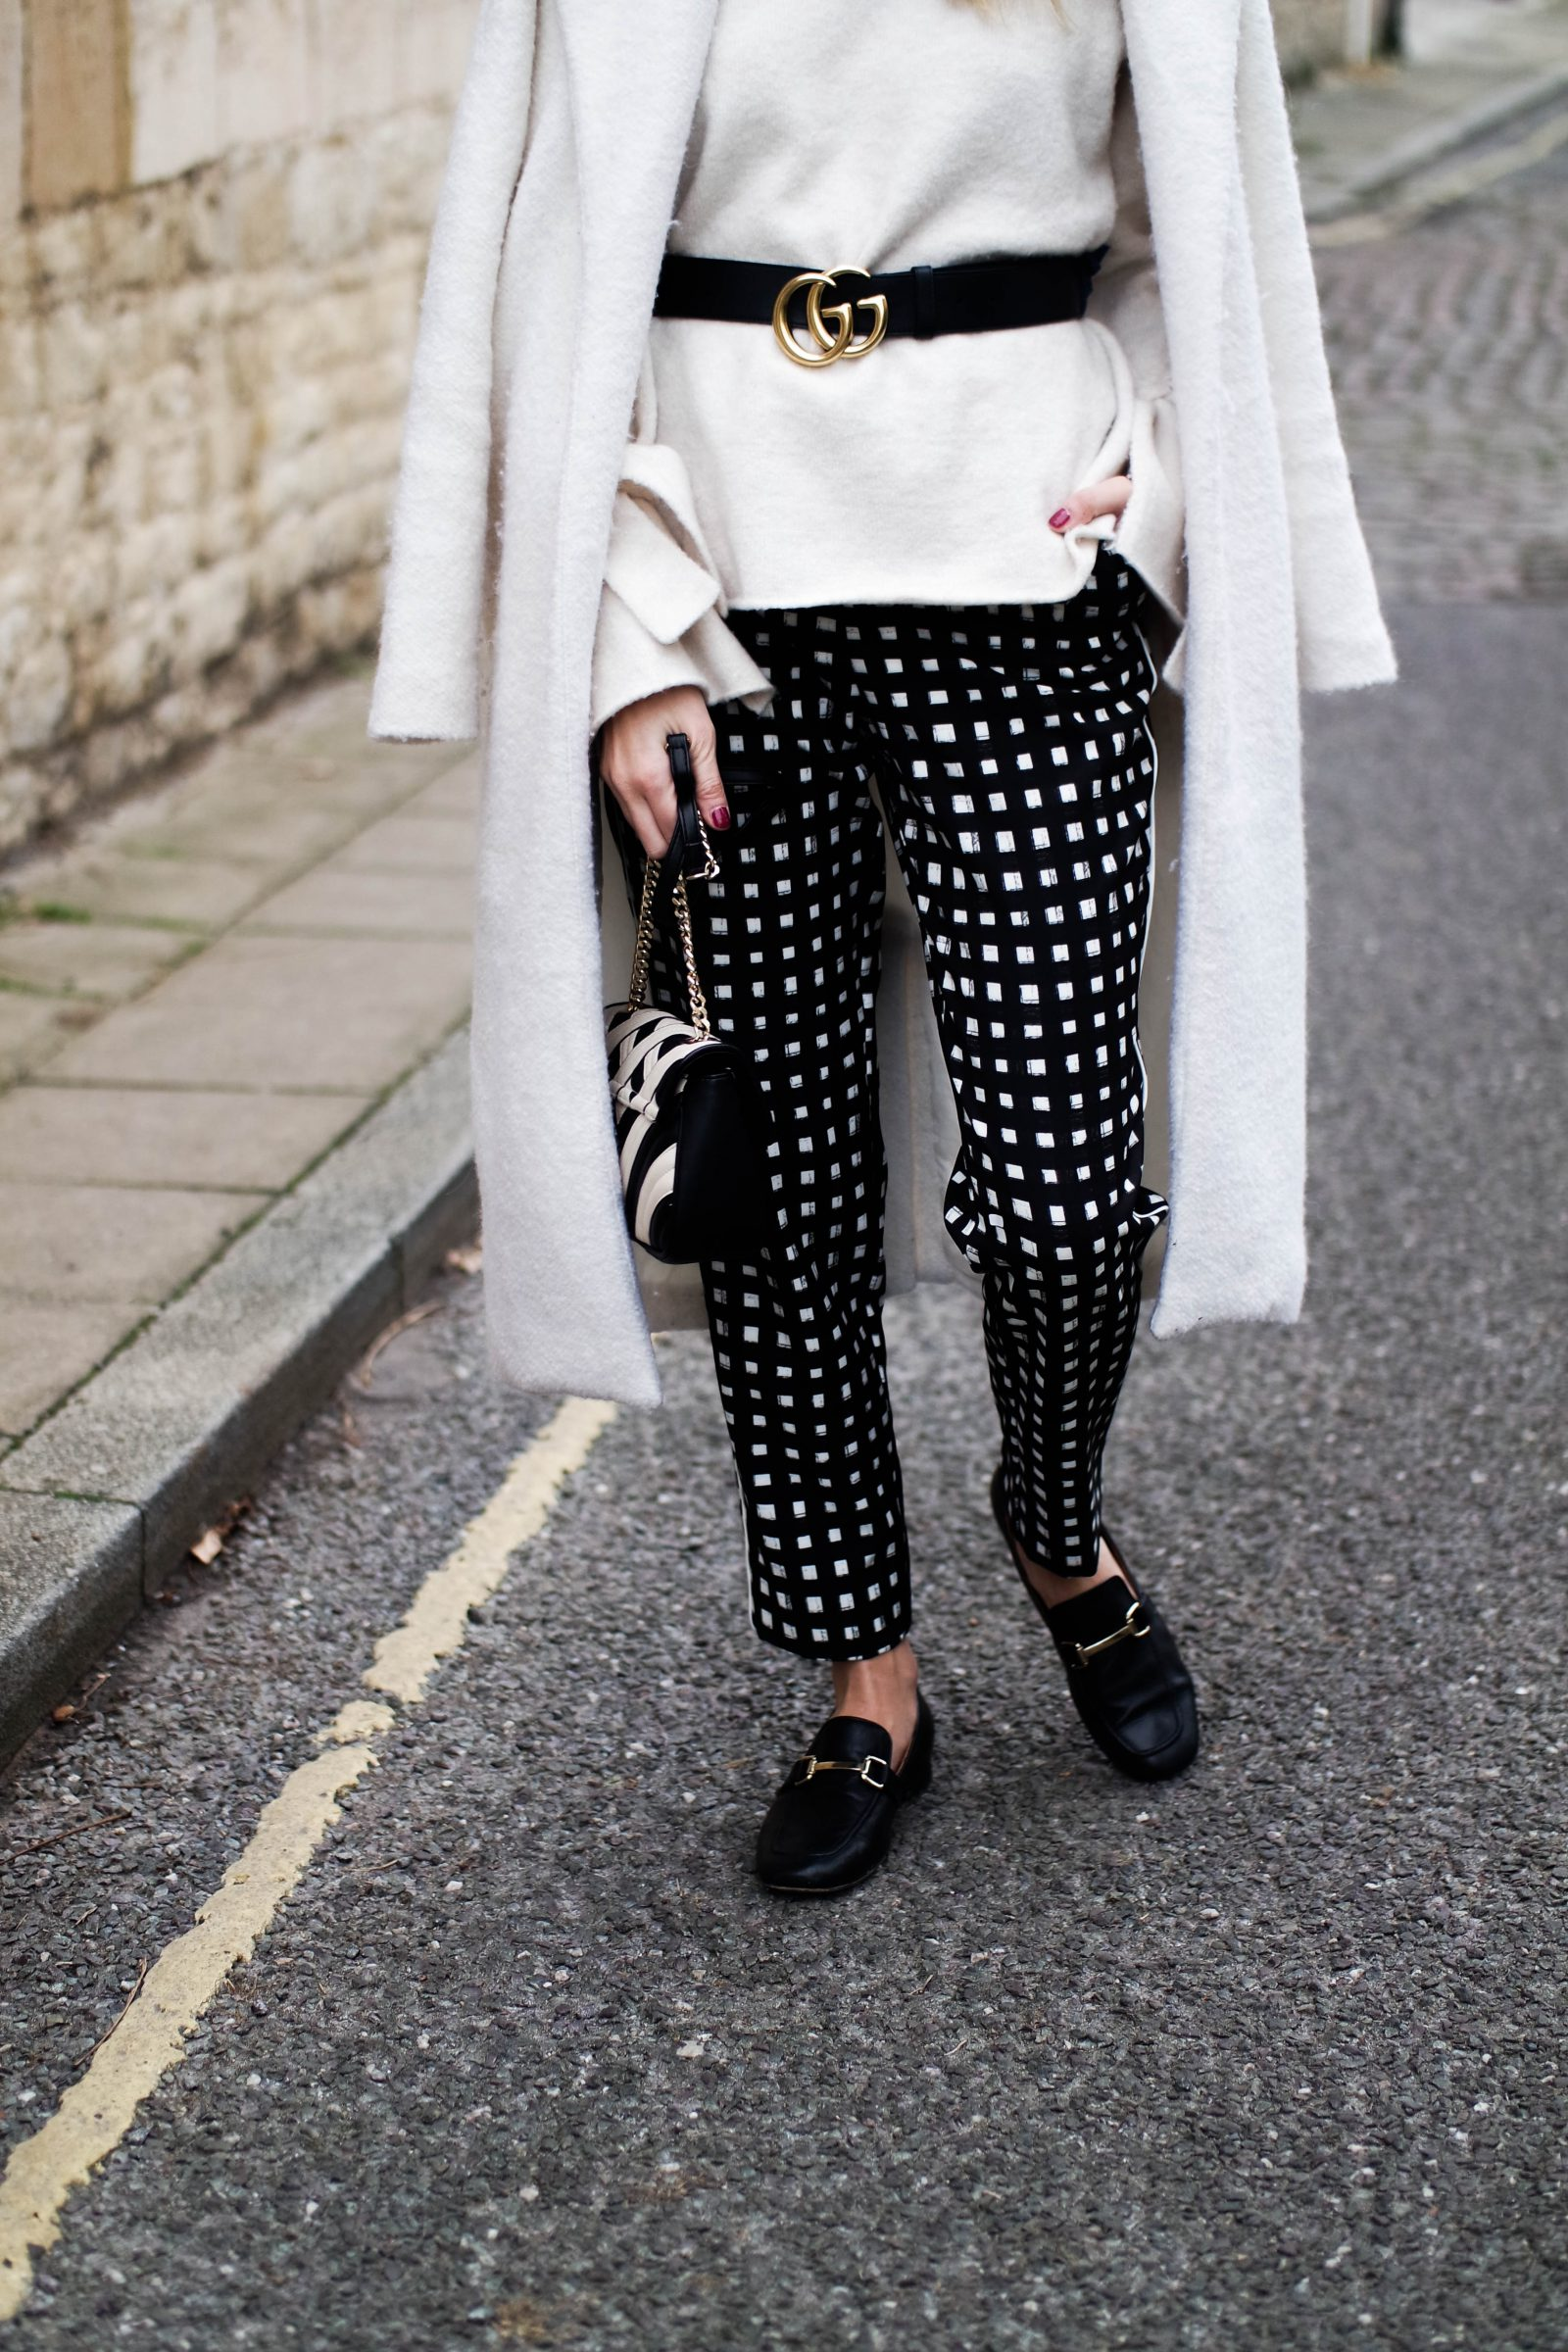 Printed Trousers Trying Something New - Monochrome